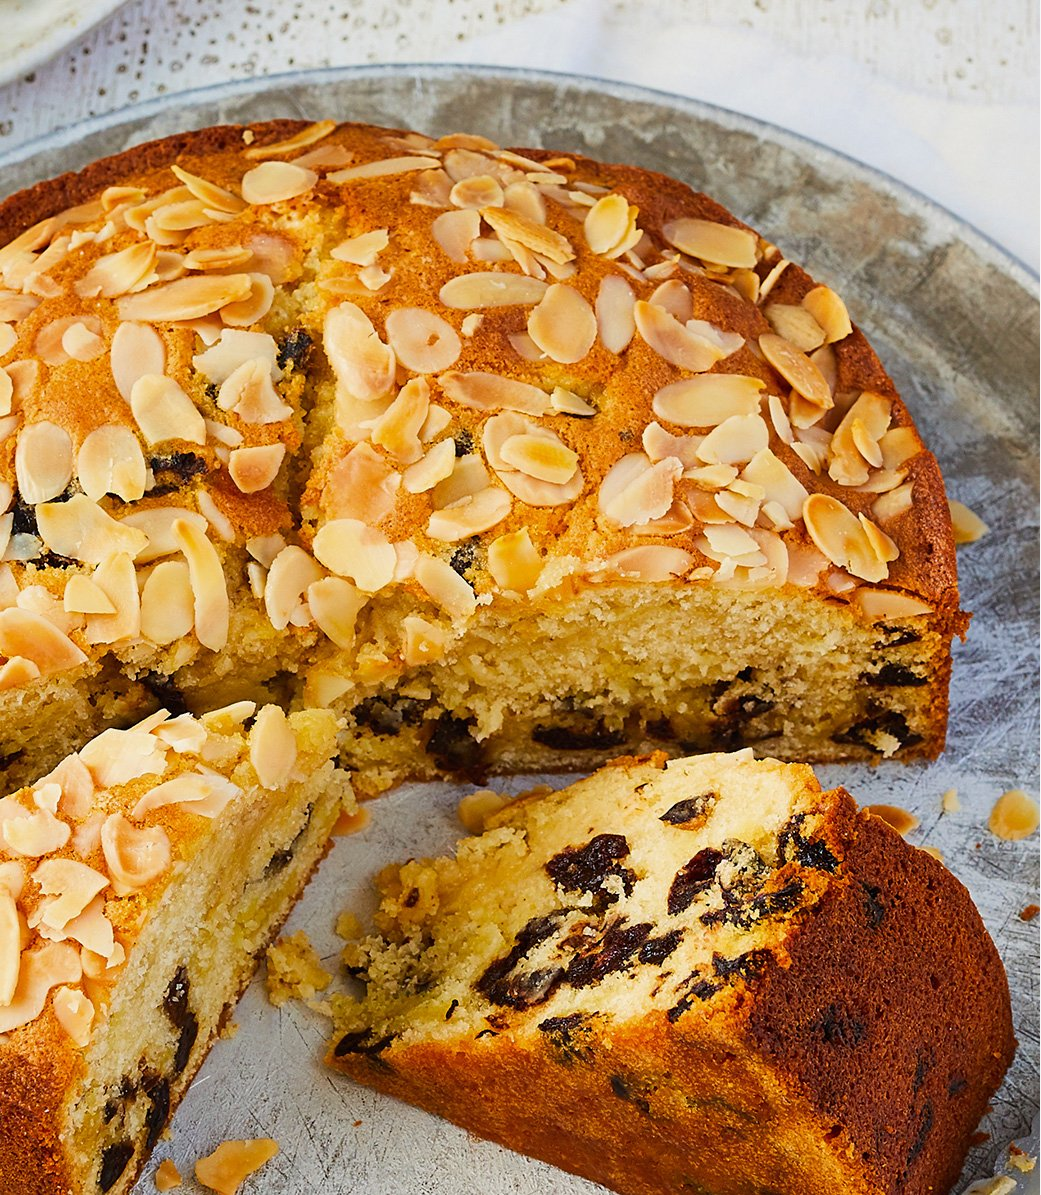 Prue Leith's Cherry and almond cake